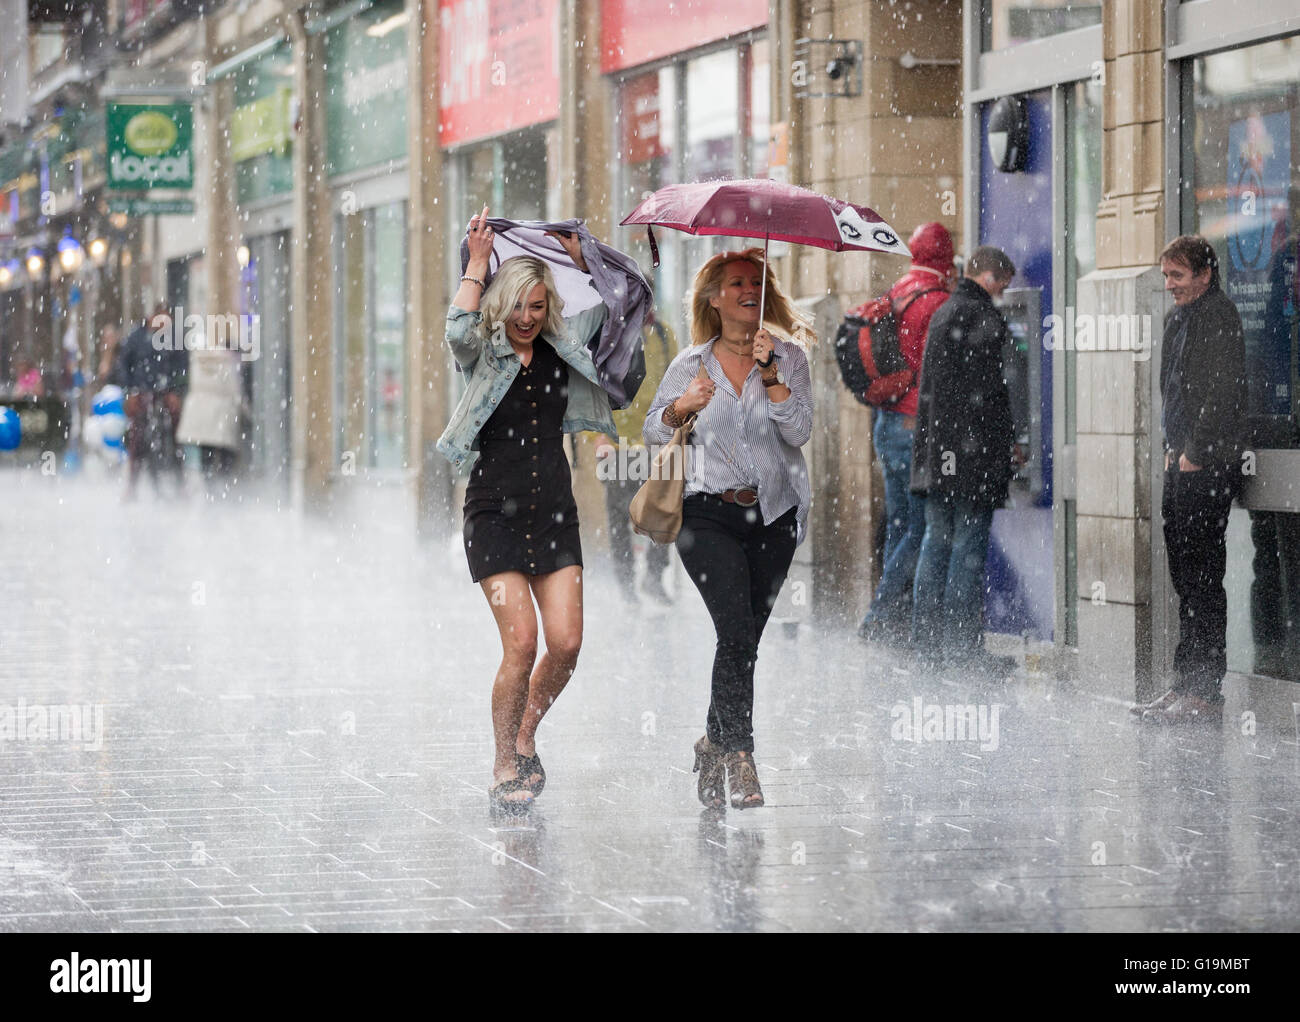 Two women running down a street in Leicester, UK, in a rainstorm. - Stock Image